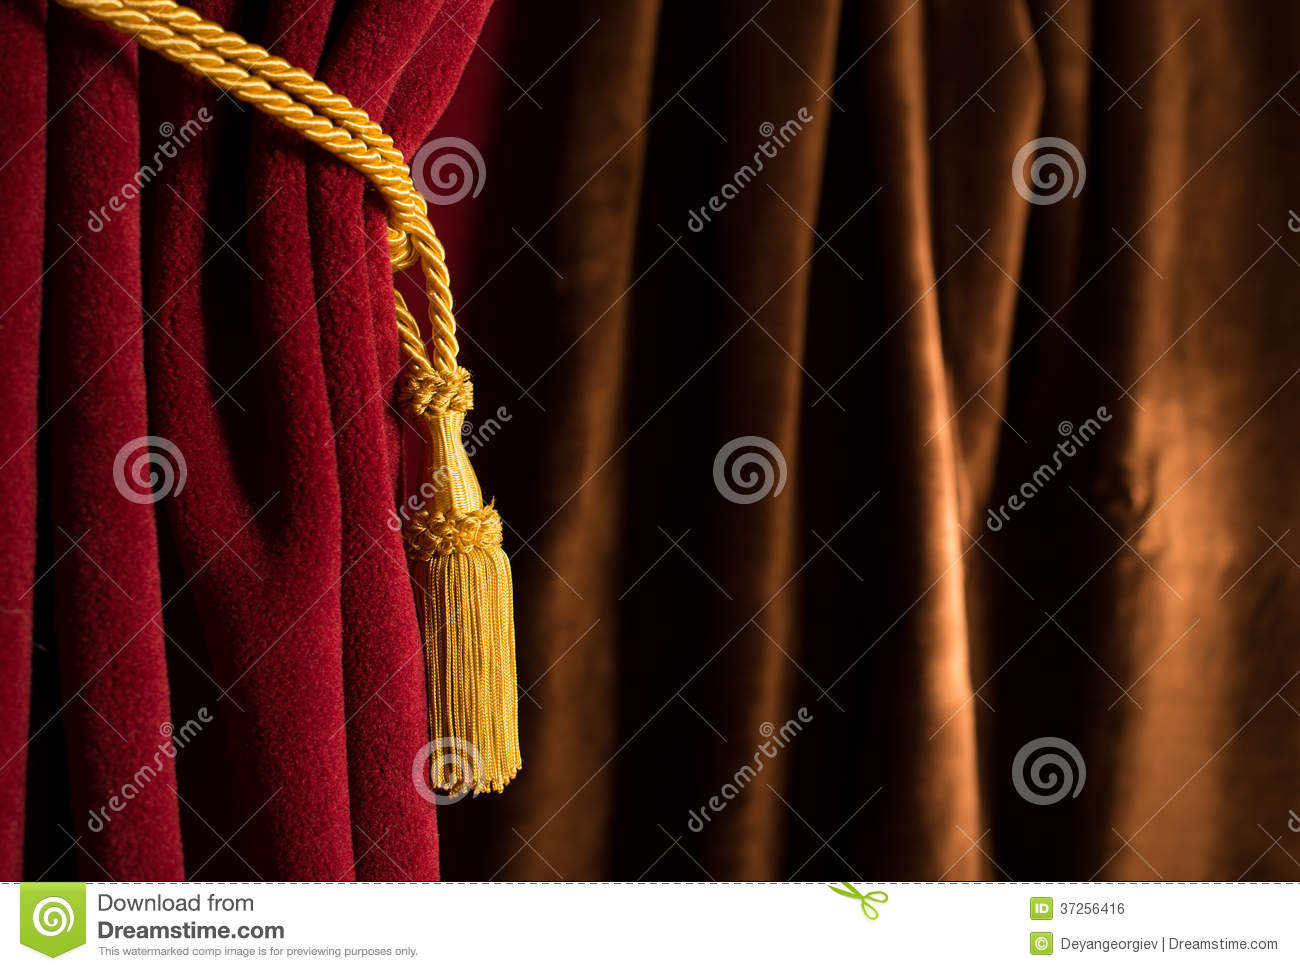 red and brown theatre curtain royalty free stock image image 37256416. Black Bedroom Furniture Sets. Home Design Ideas